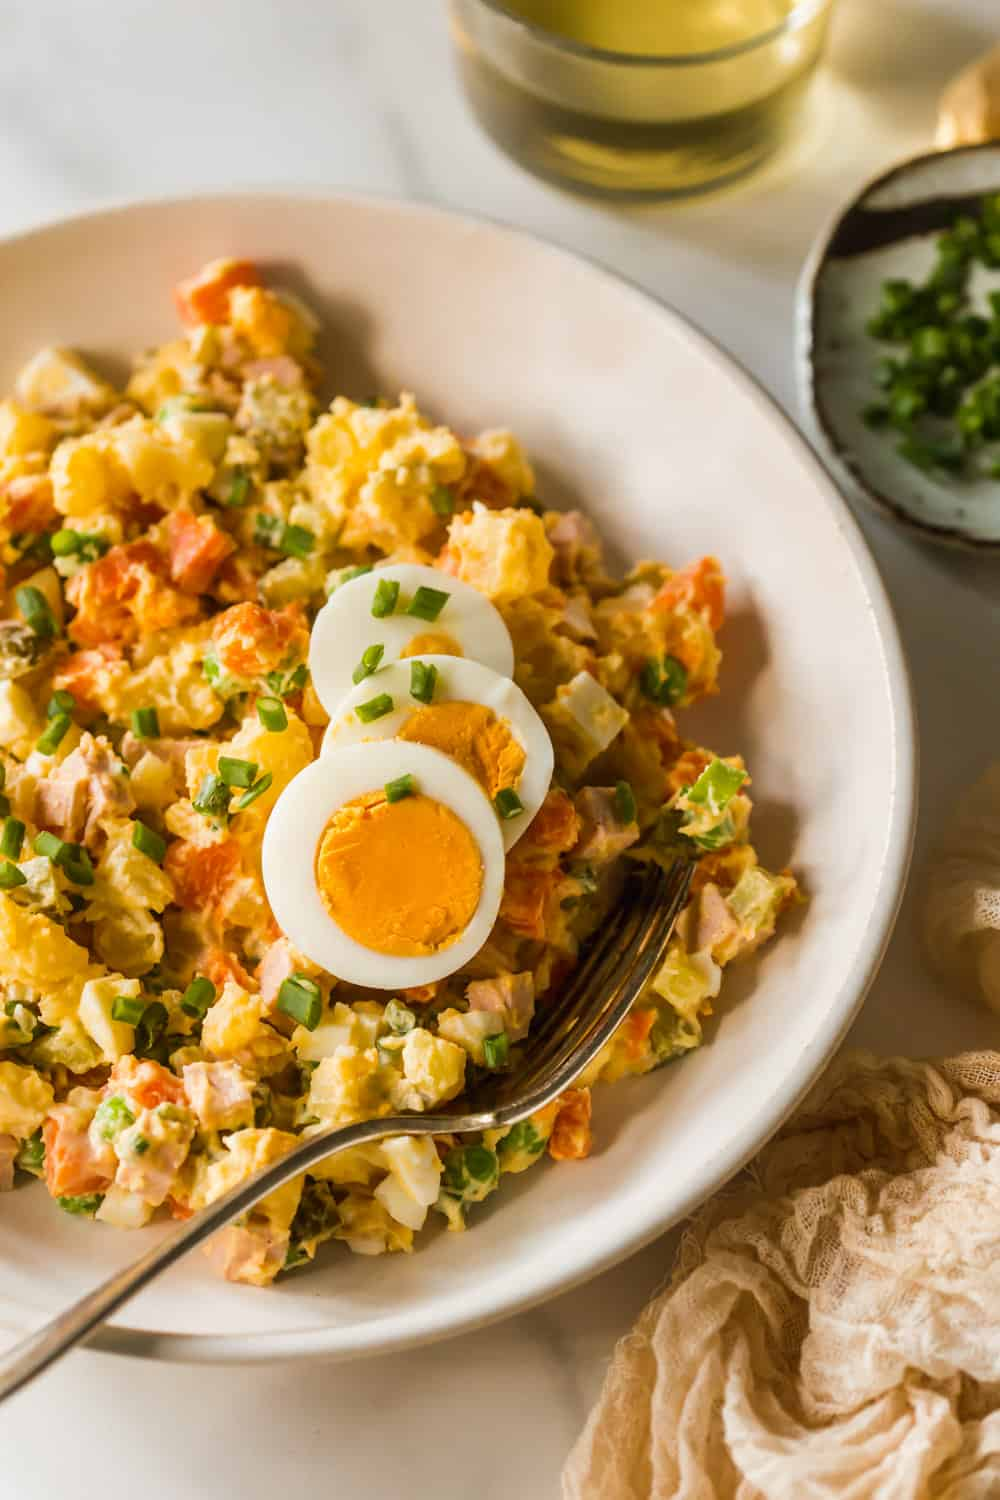 Yellow potato salad with sliced eggs on top in a large white bowl